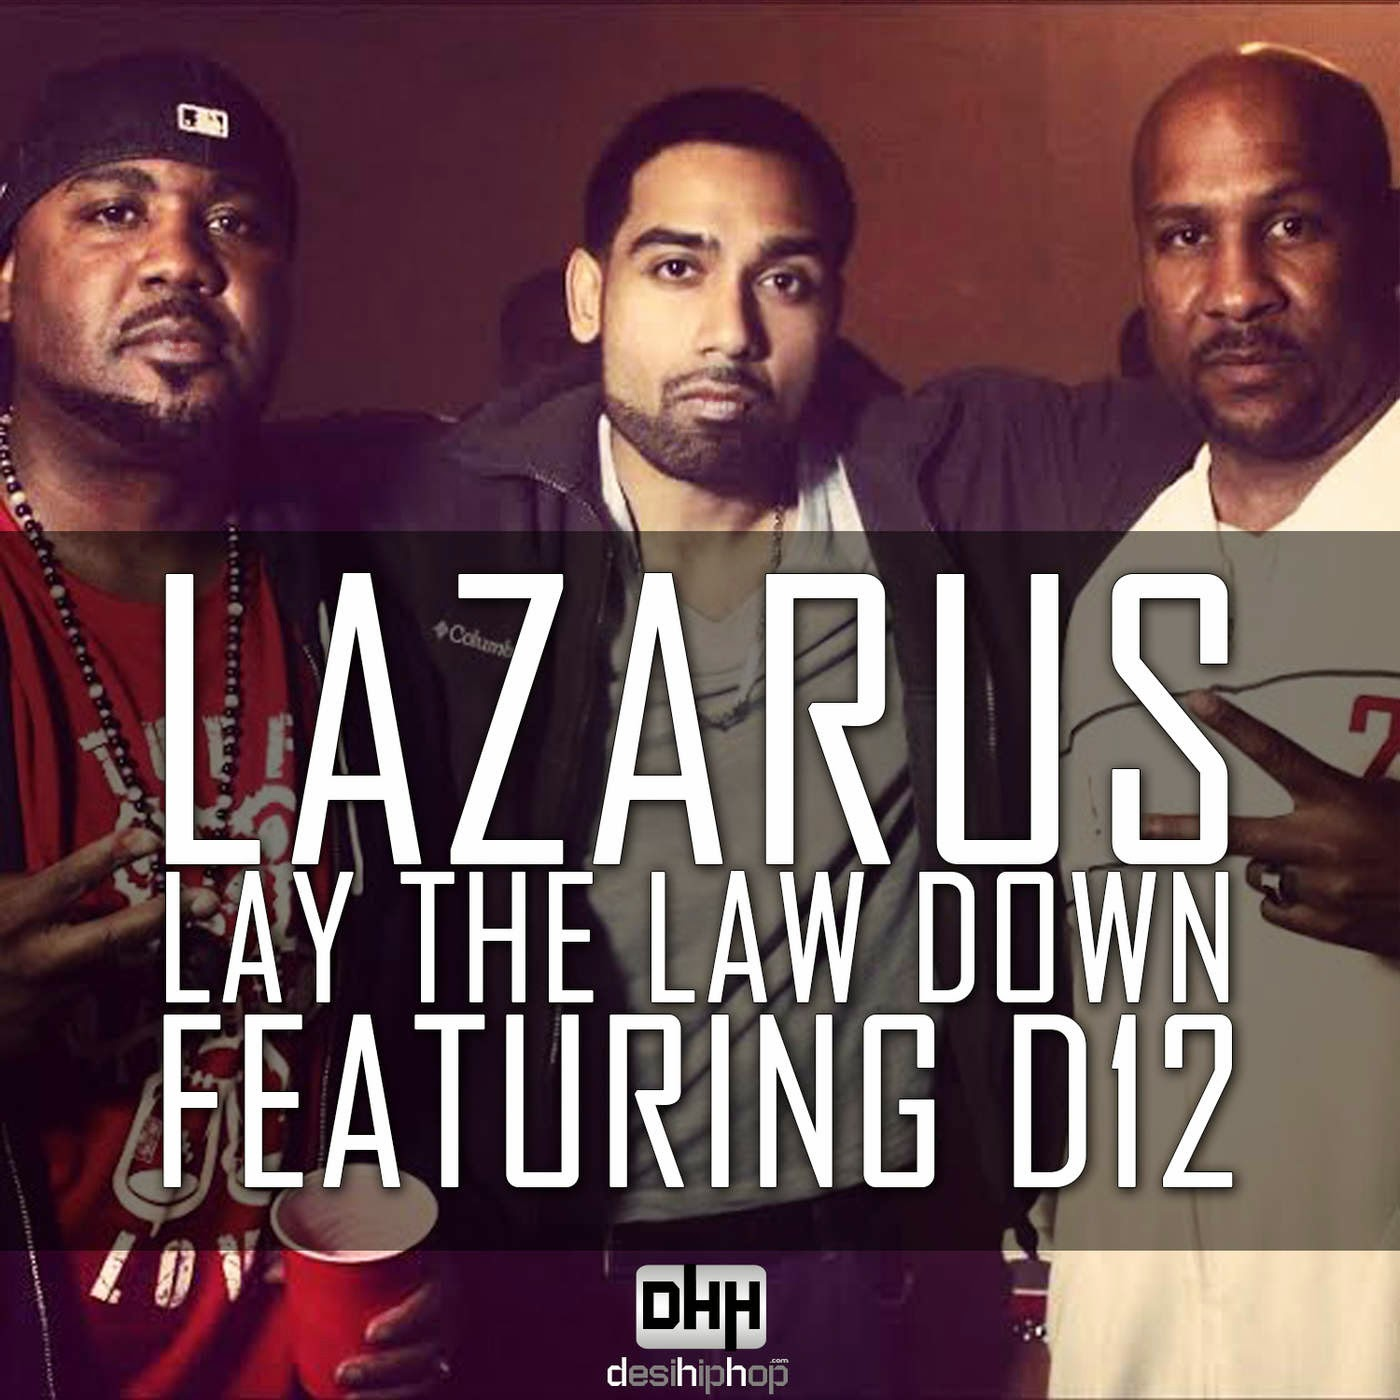 Lazarus - Lay the Law Down (feat. D12) - Single Cover